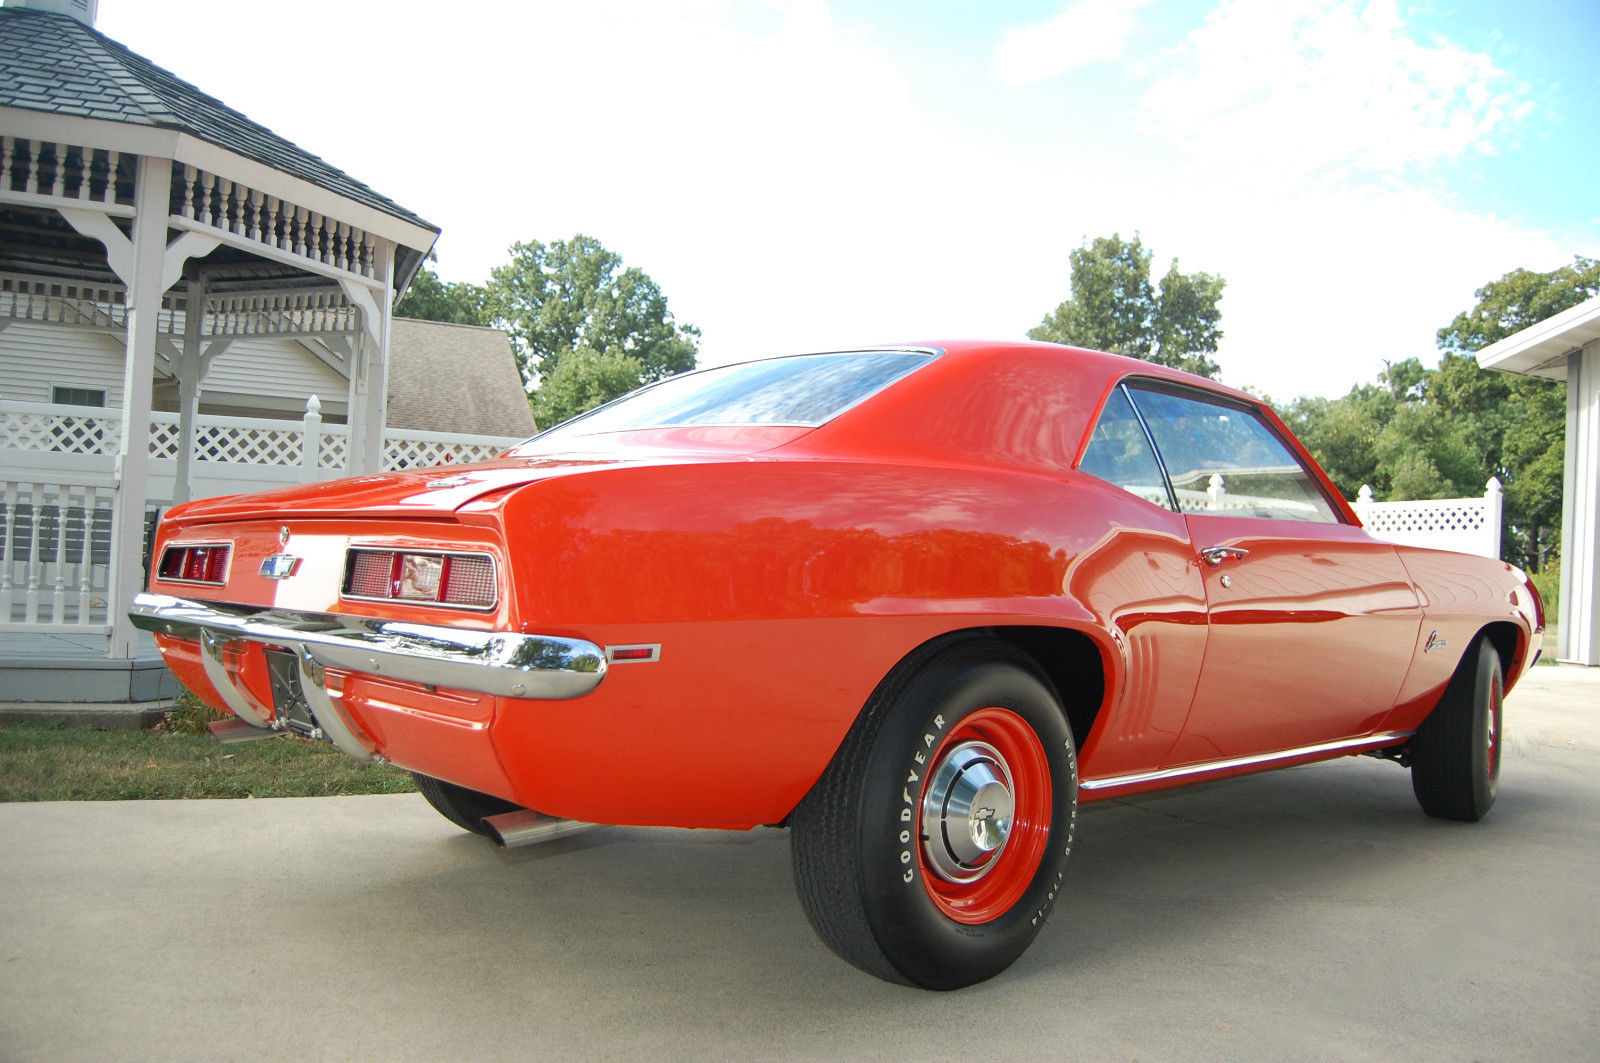 1969 camaro copo zl1 for sale in atwood illinois united. Black Bedroom Furniture Sets. Home Design Ideas